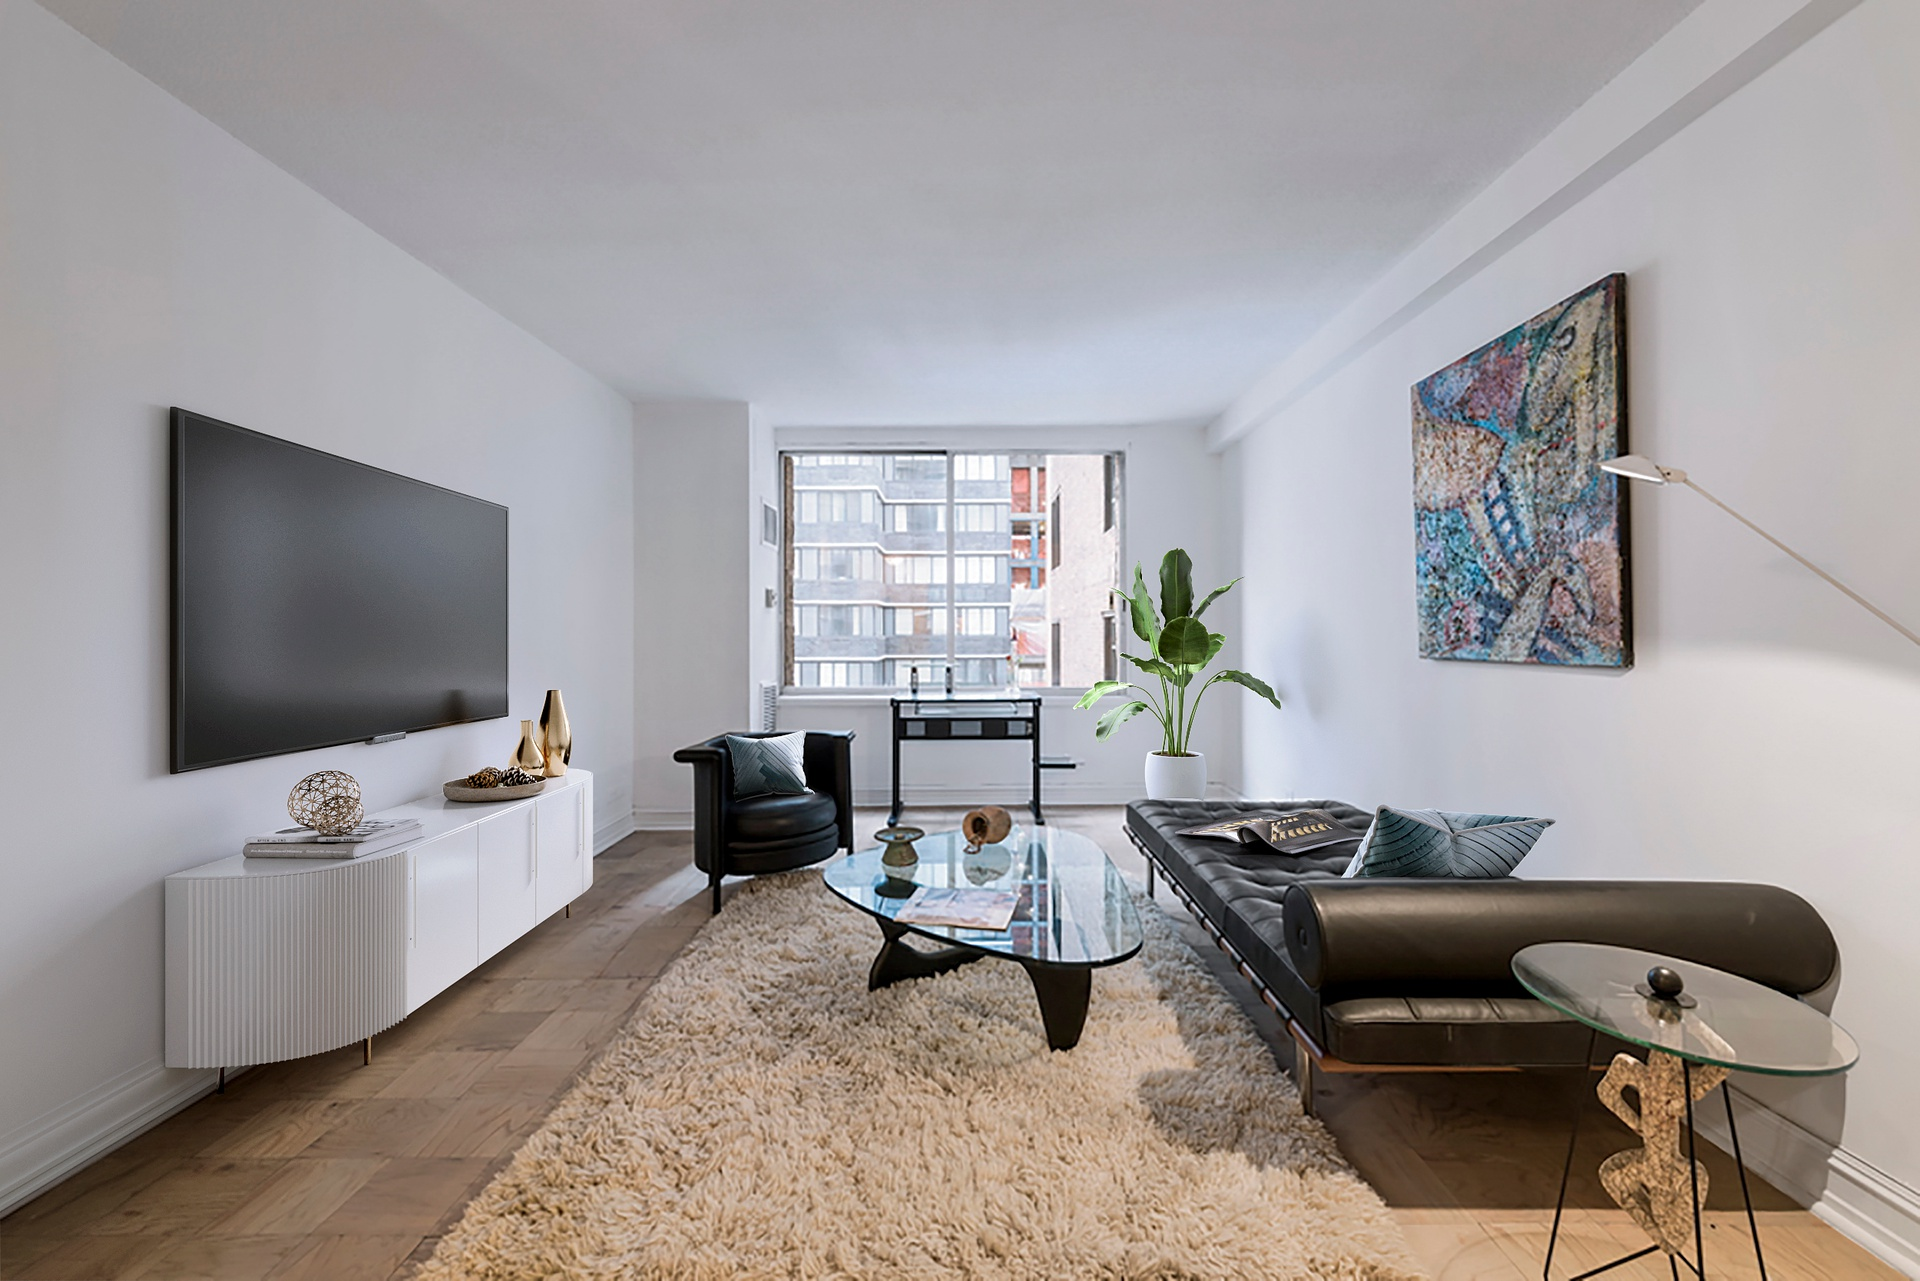 44 West 62nd Street, 5E - $695,000 // 1 Bed // 1 Bath // 715 SQFT A quiet, east-facing co-op filled with natural light, this 1-bedroom, 1-bathroom home is the embodiment of traditional New York City living.